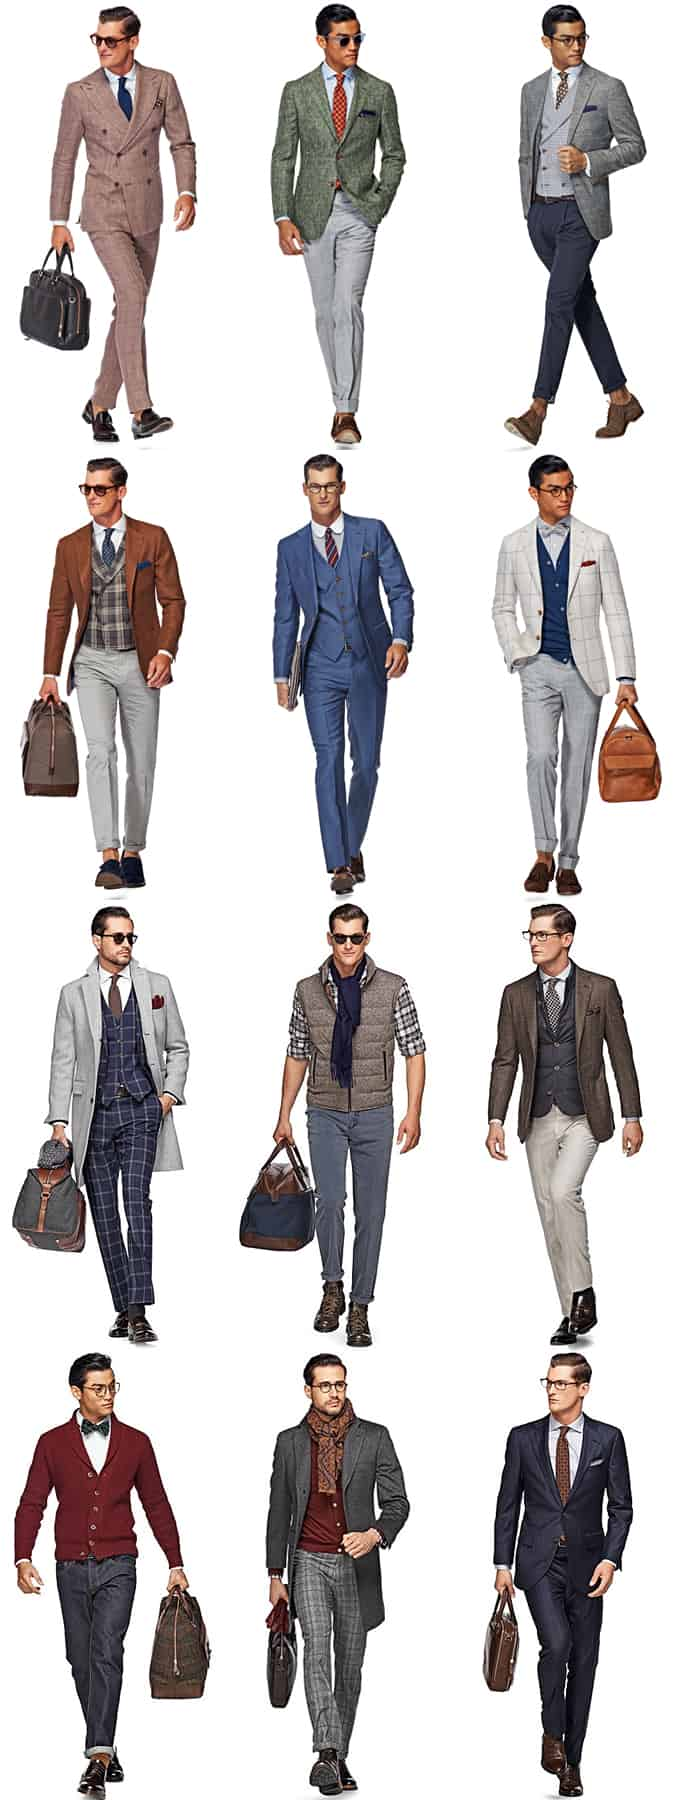 Recent Suitsupply Menswear Campaigns/Lookbooks